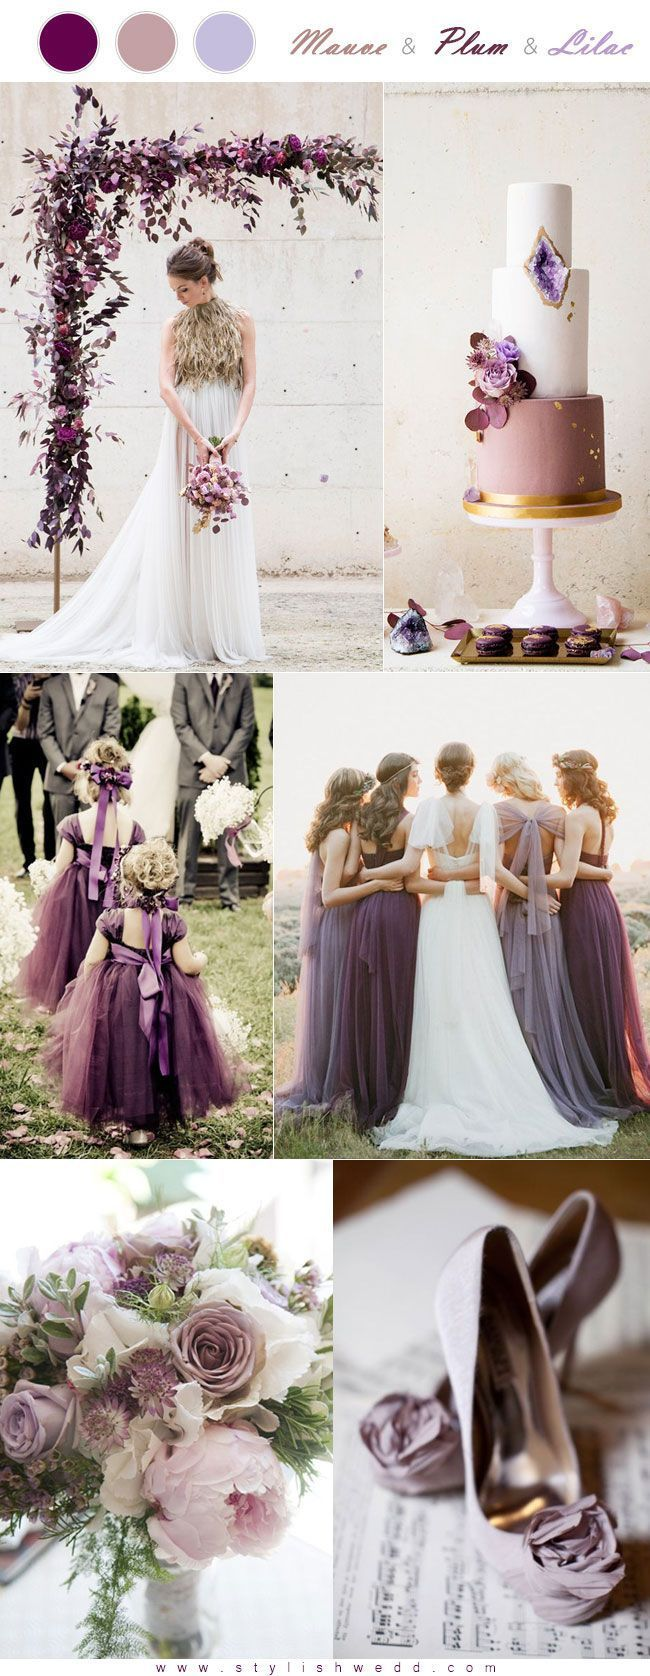 The Hottest 6 Mauve Wedding Color Palettes to Die For | Pinterest ...